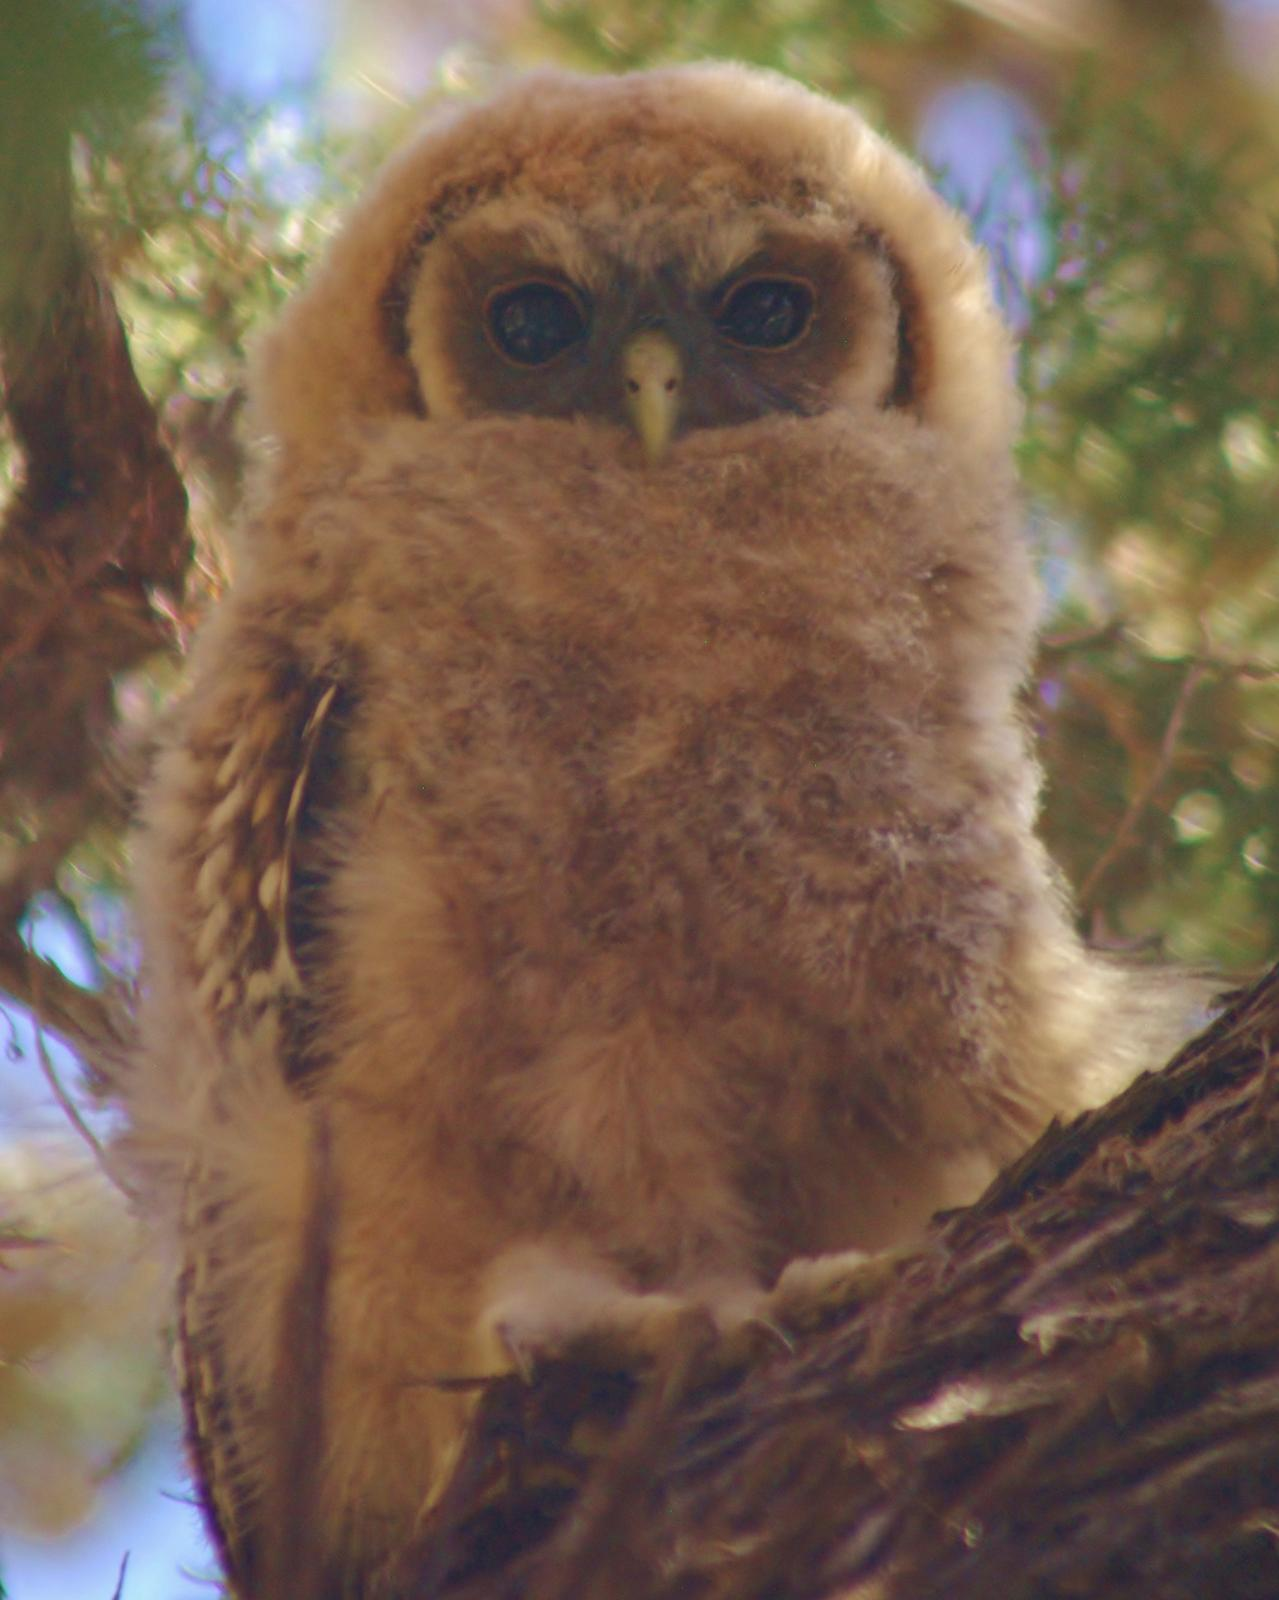 Spotted Owl Photo by Leah R. Lewis